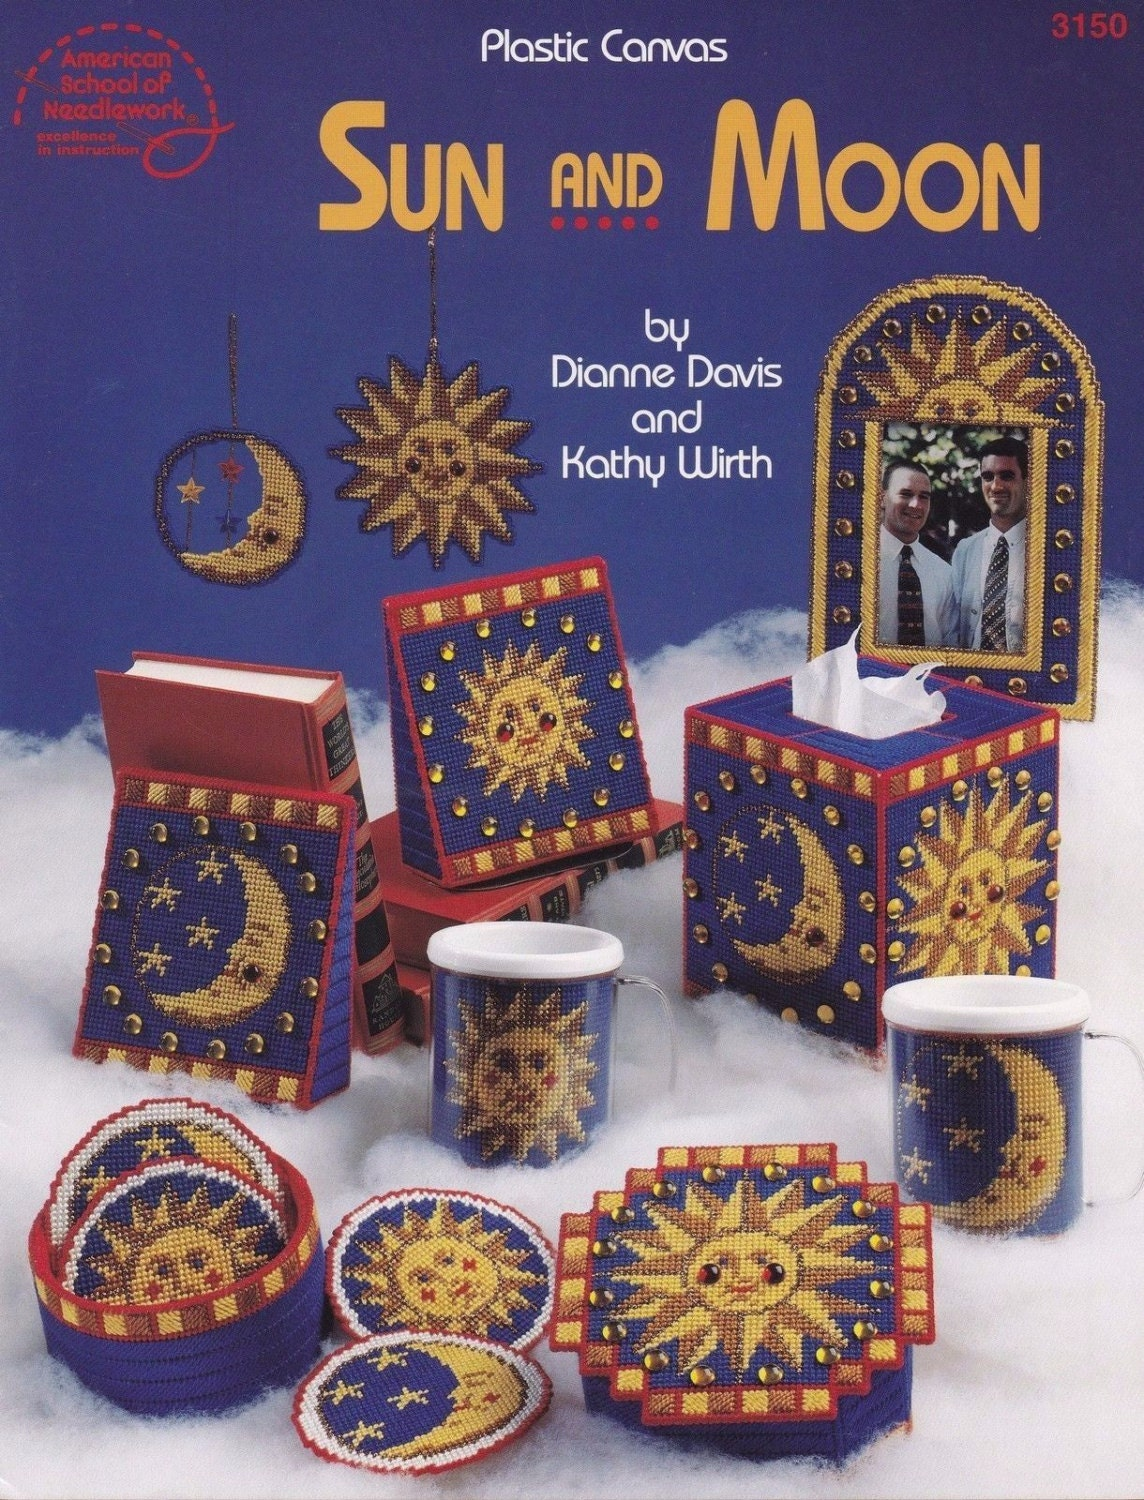 sun and moon home decor accessories plastic canvas pattern. Black Bedroom Furniture Sets. Home Design Ideas